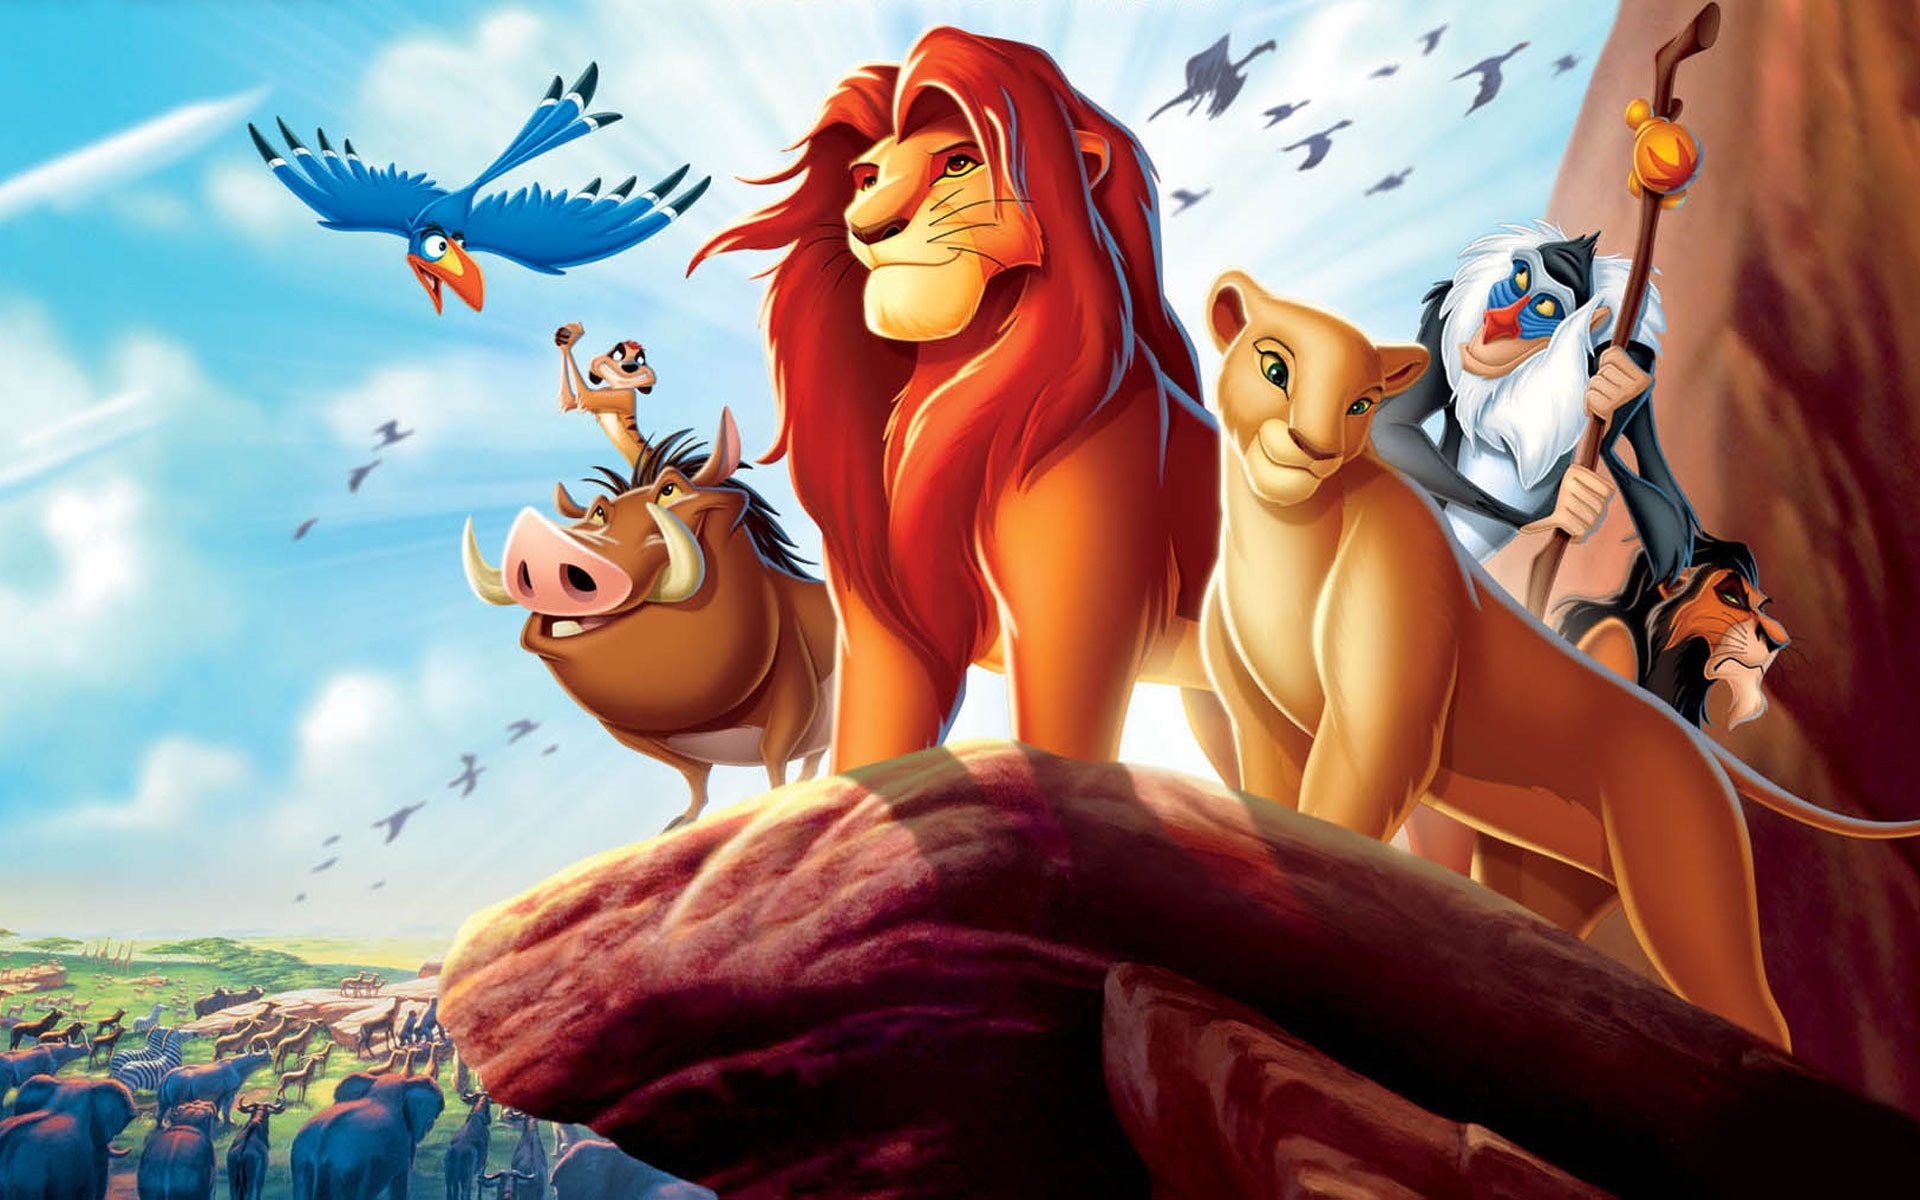 The Lion King – July 19th, 2019